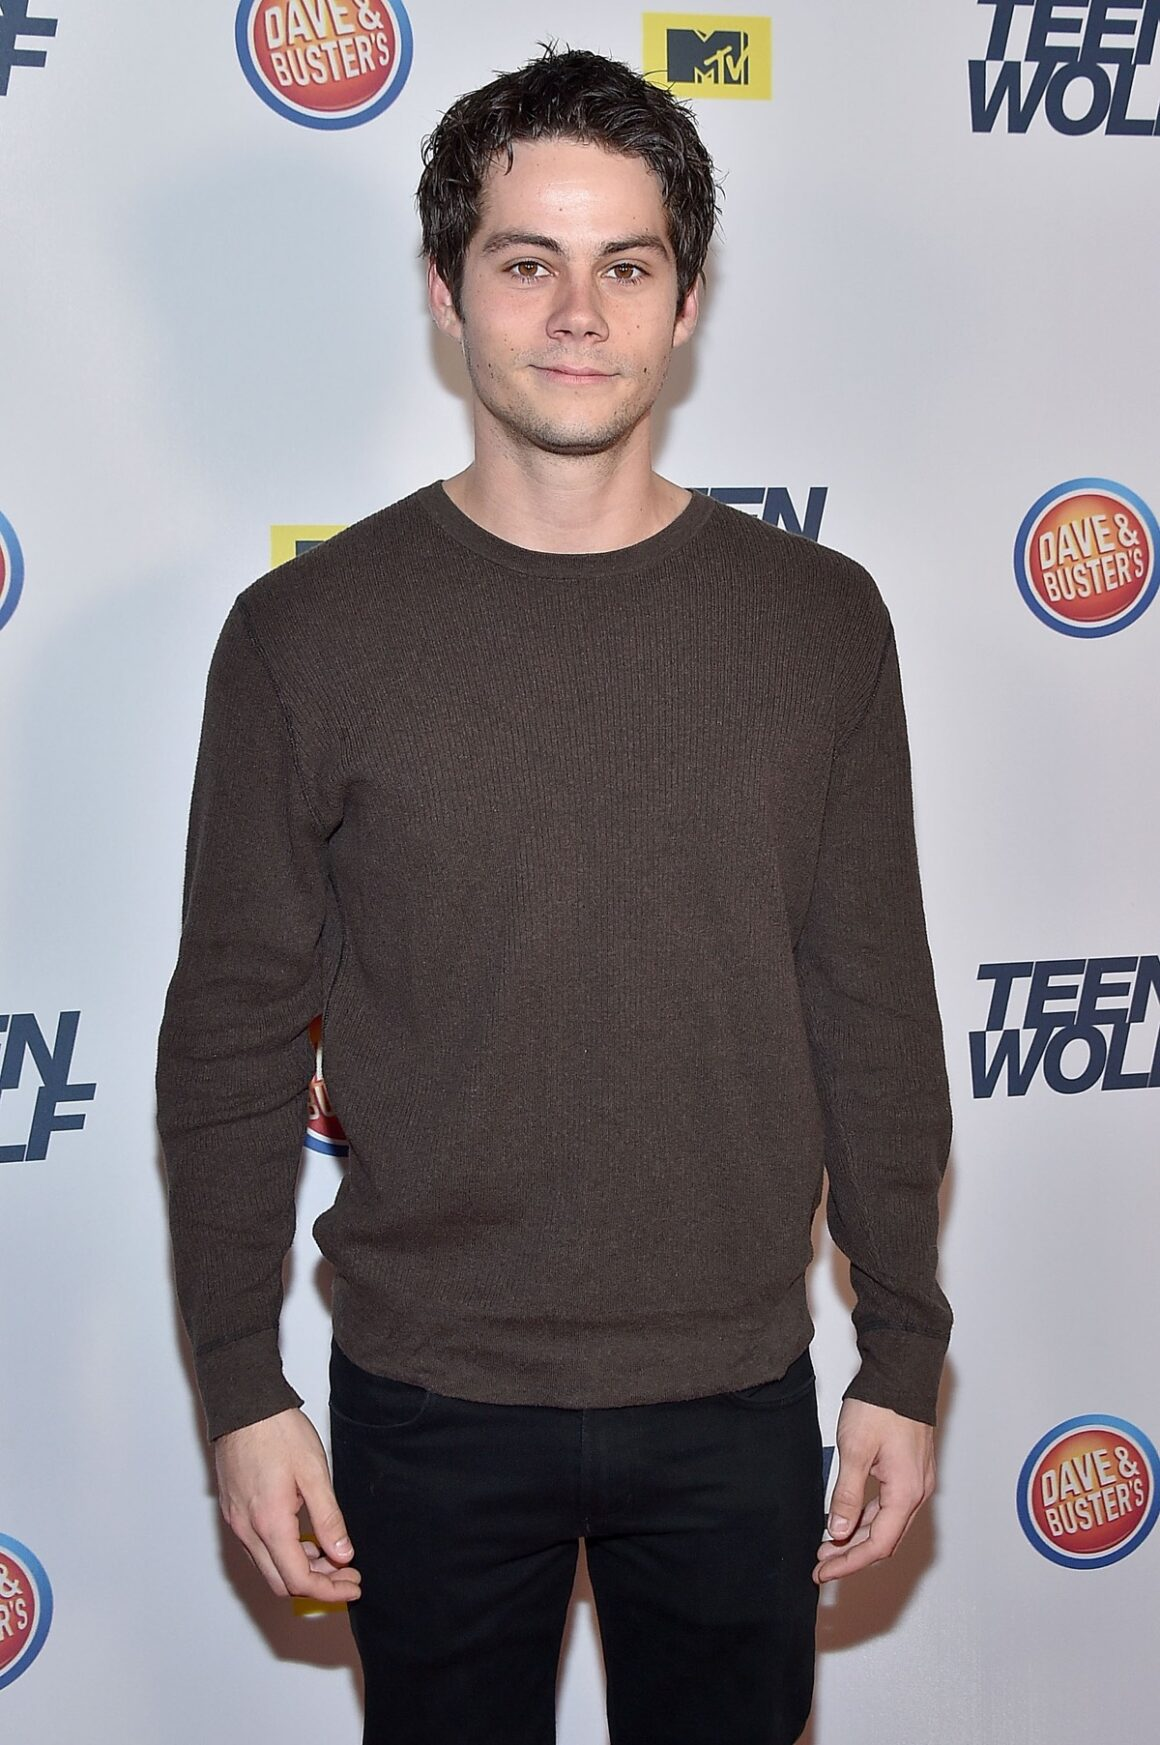 Dylan O'Brien MTV Teen Wolf Los Angeles Premiere Party - Arrivals